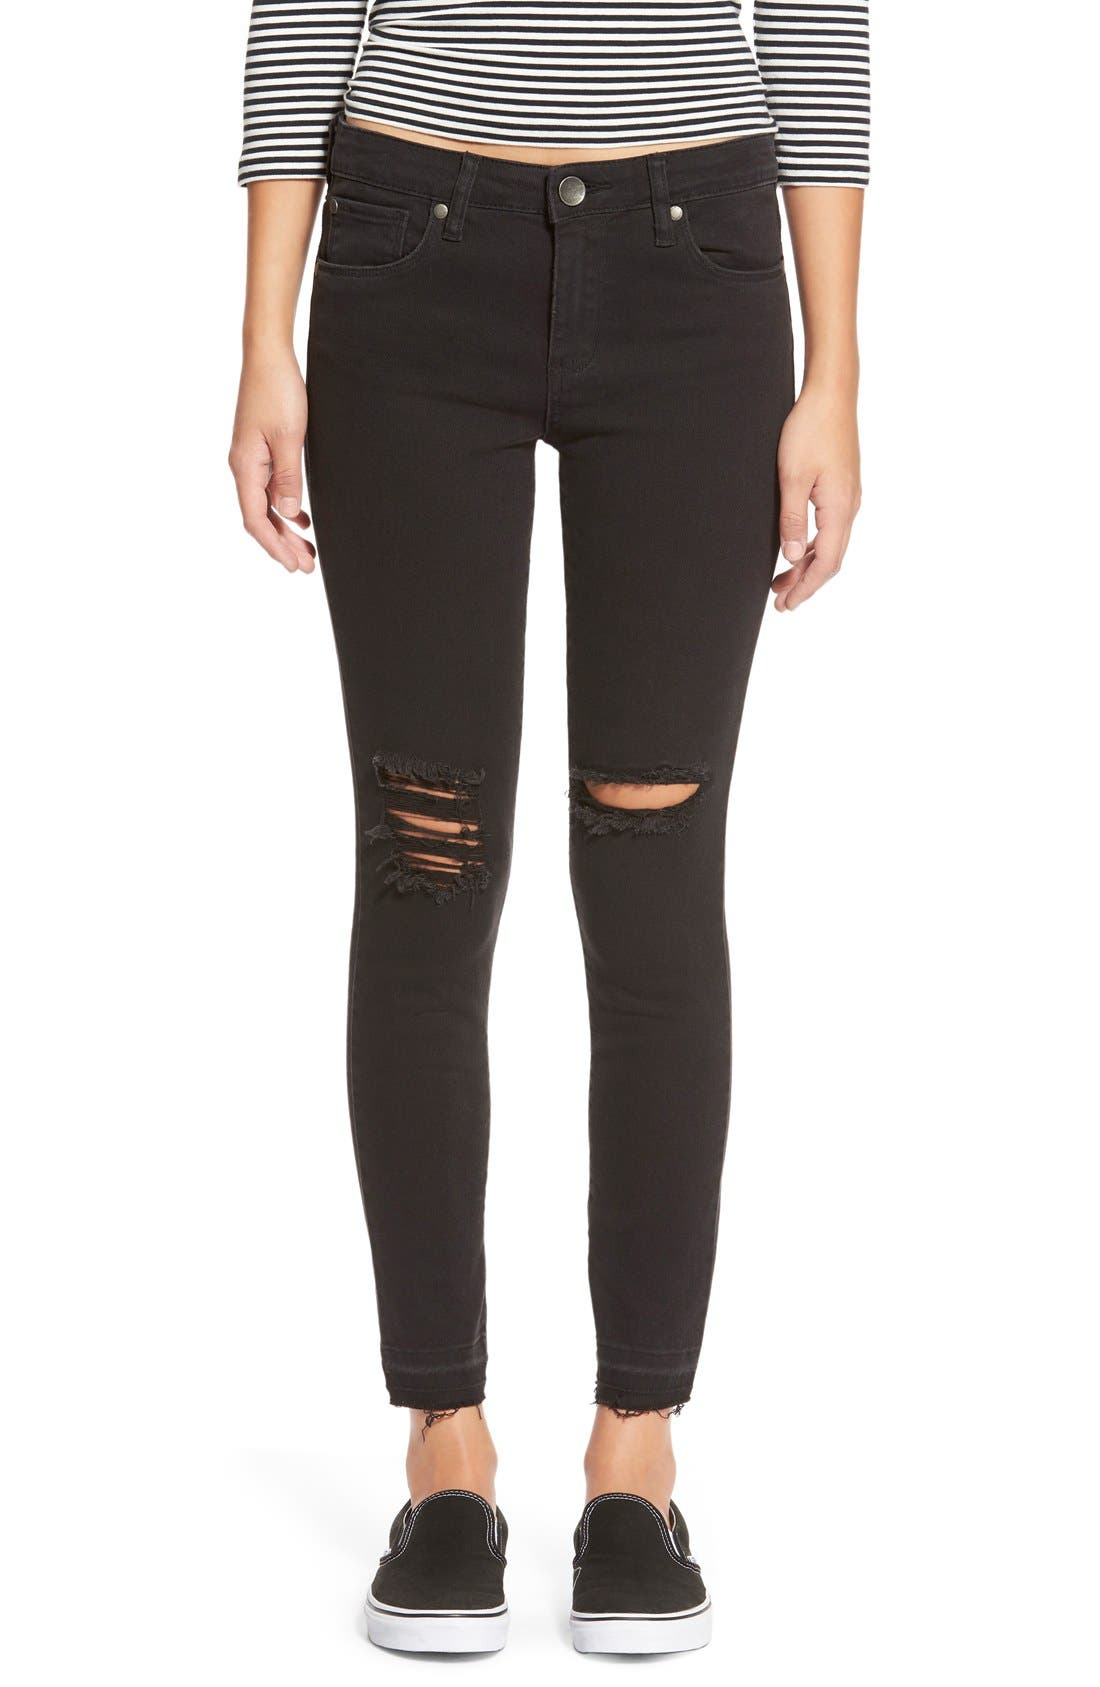 Main Image - STSBlue 'Emma' Distressed High Rise Ankle Skinny Jeans (Black)